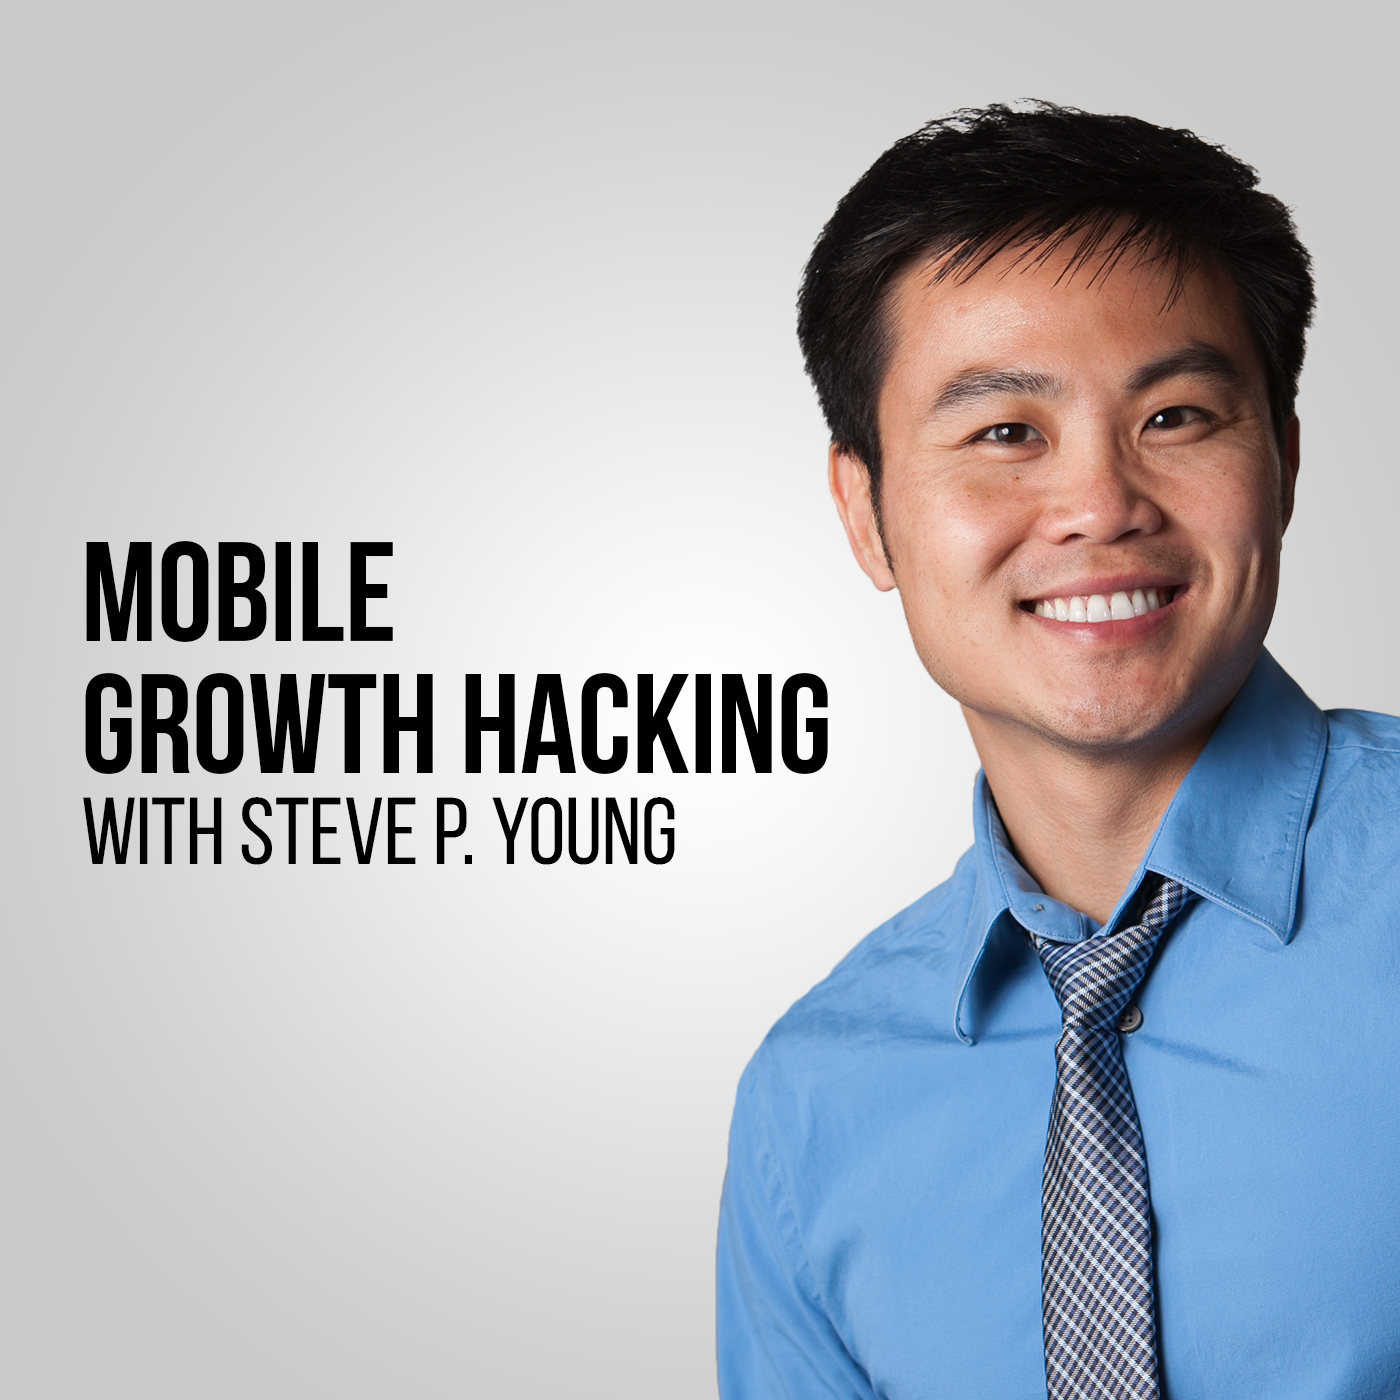 AppMasters.co - App Marketing, Business & Promotion with Steve P. Young